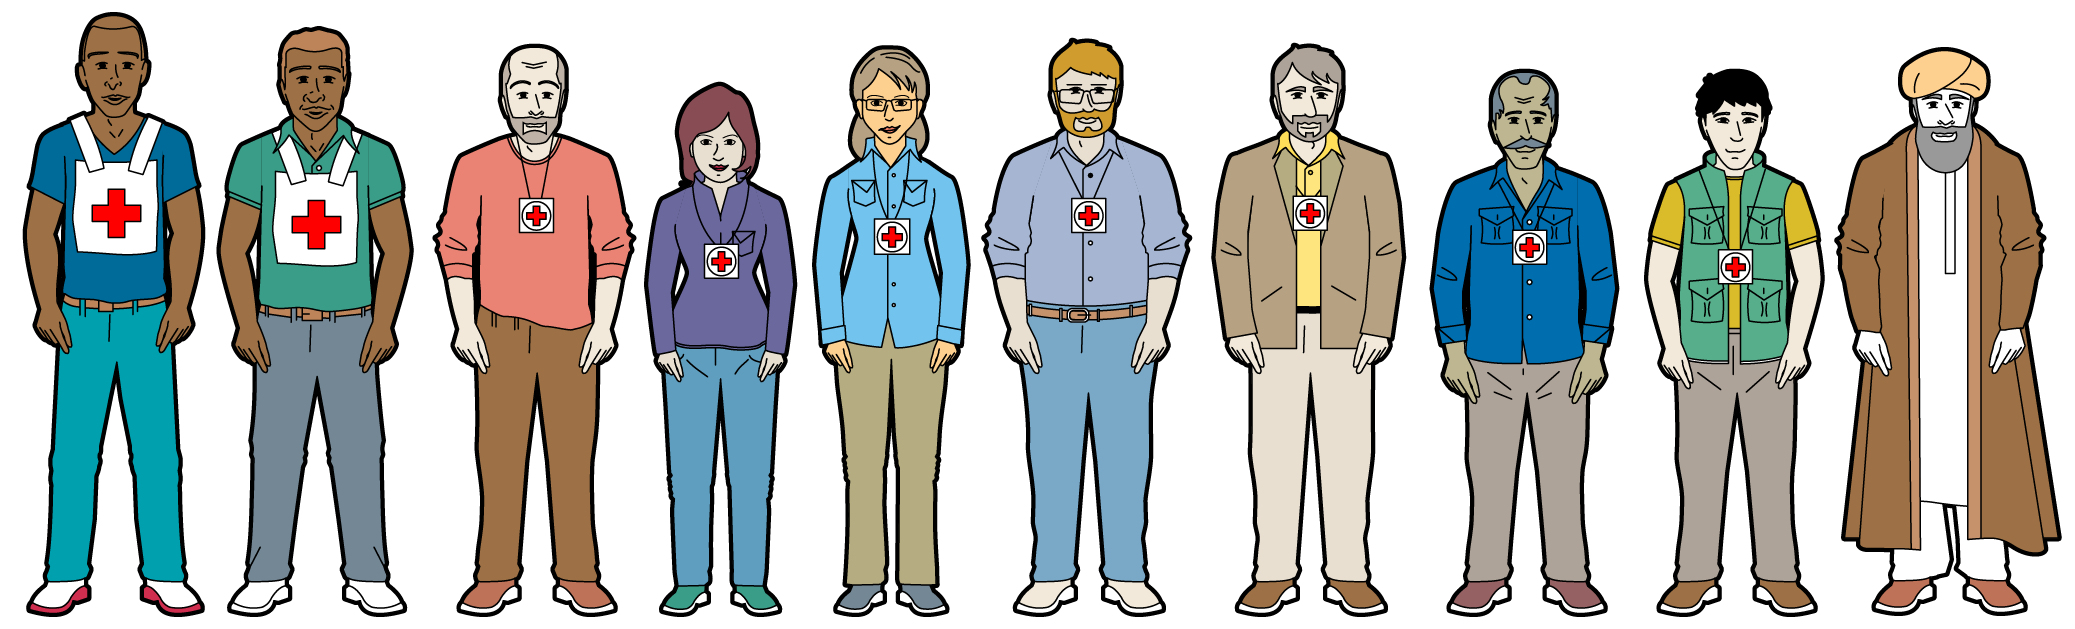 A Group of Different Character